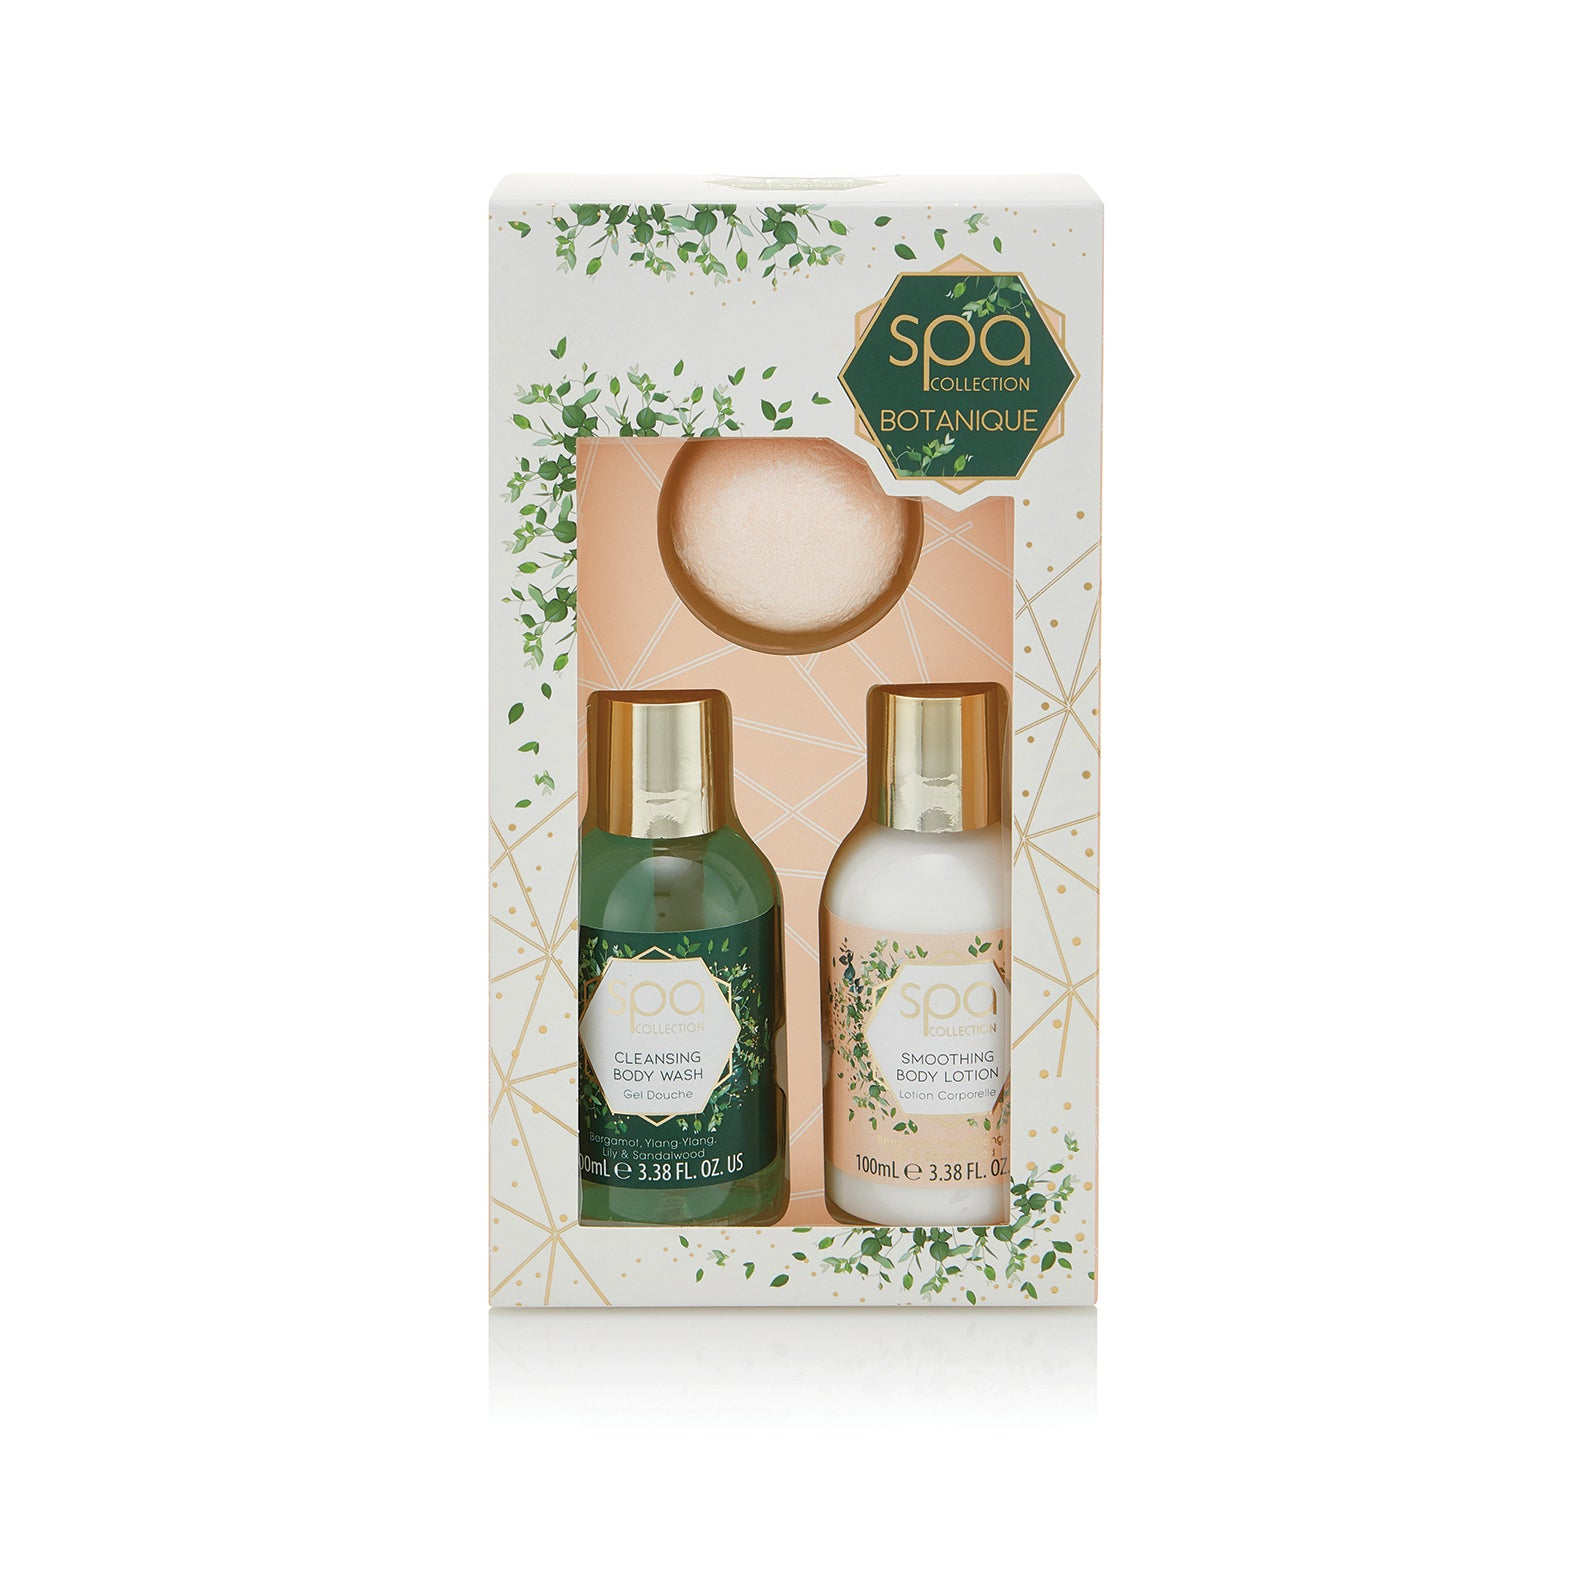 Style & Grace Spa Botanique Mini Treats